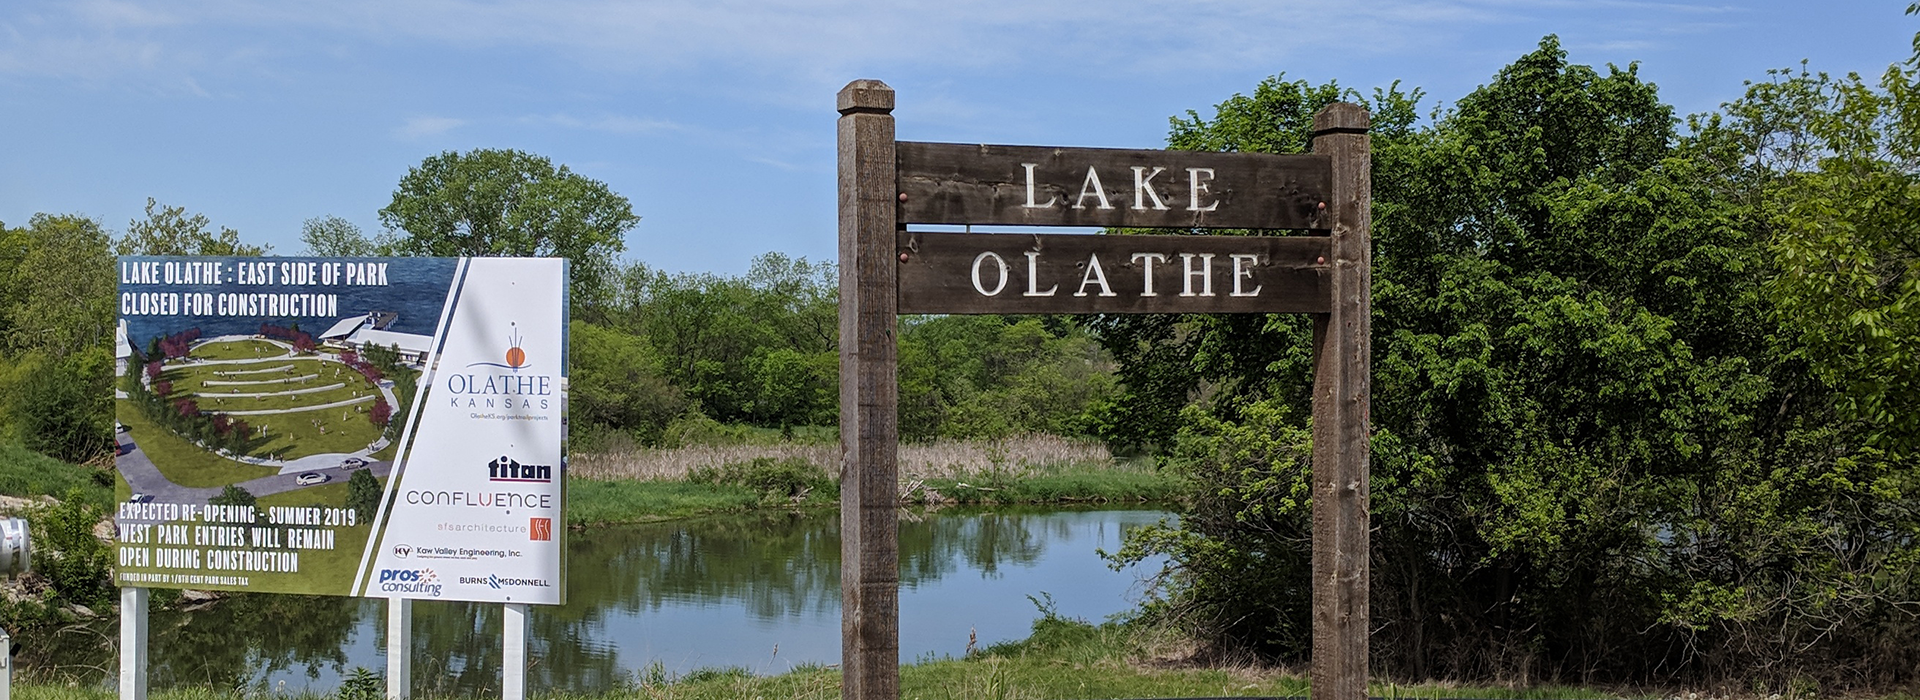 lake olathe closed